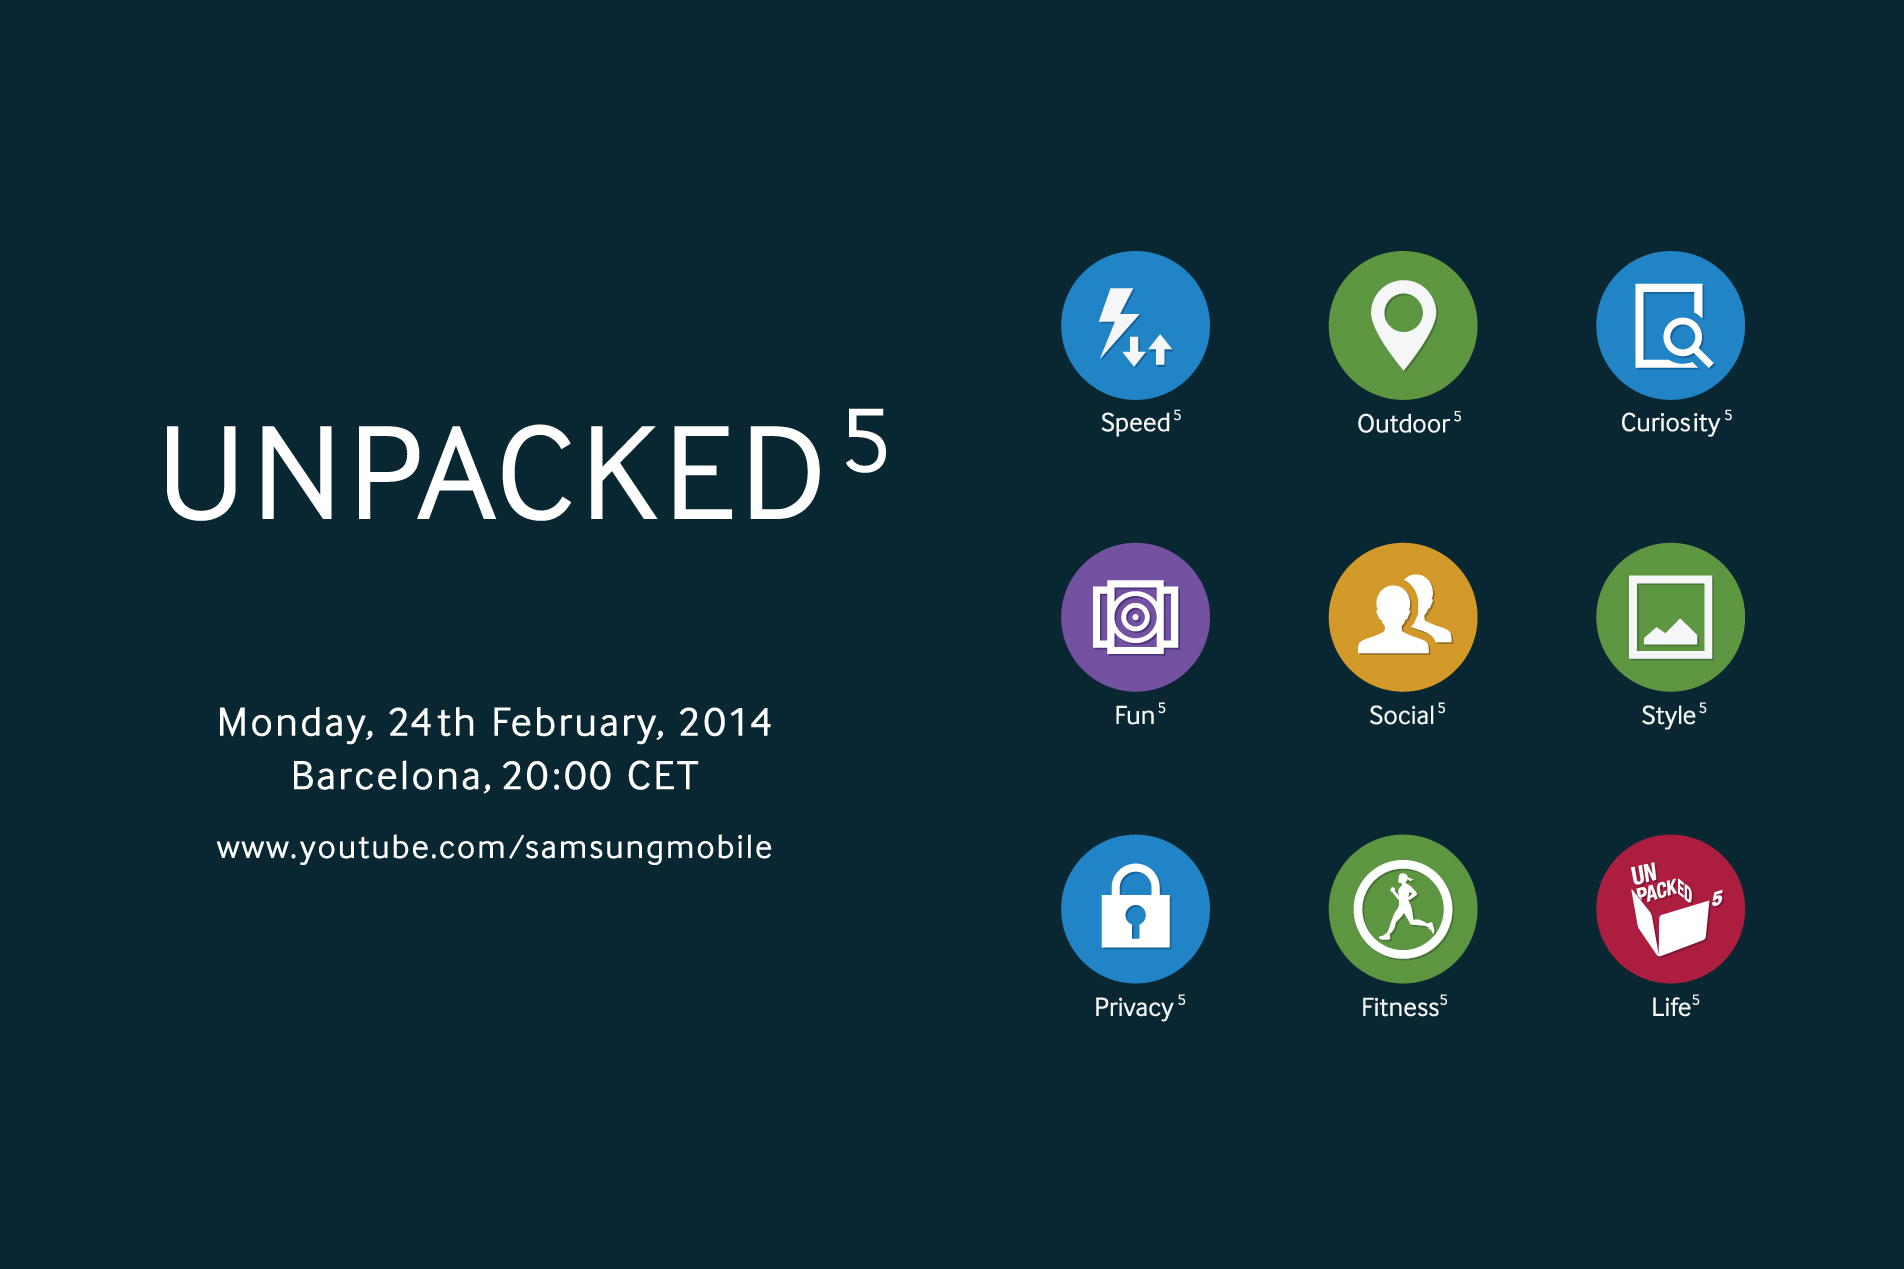 Update on Samsung Unpacked 2014